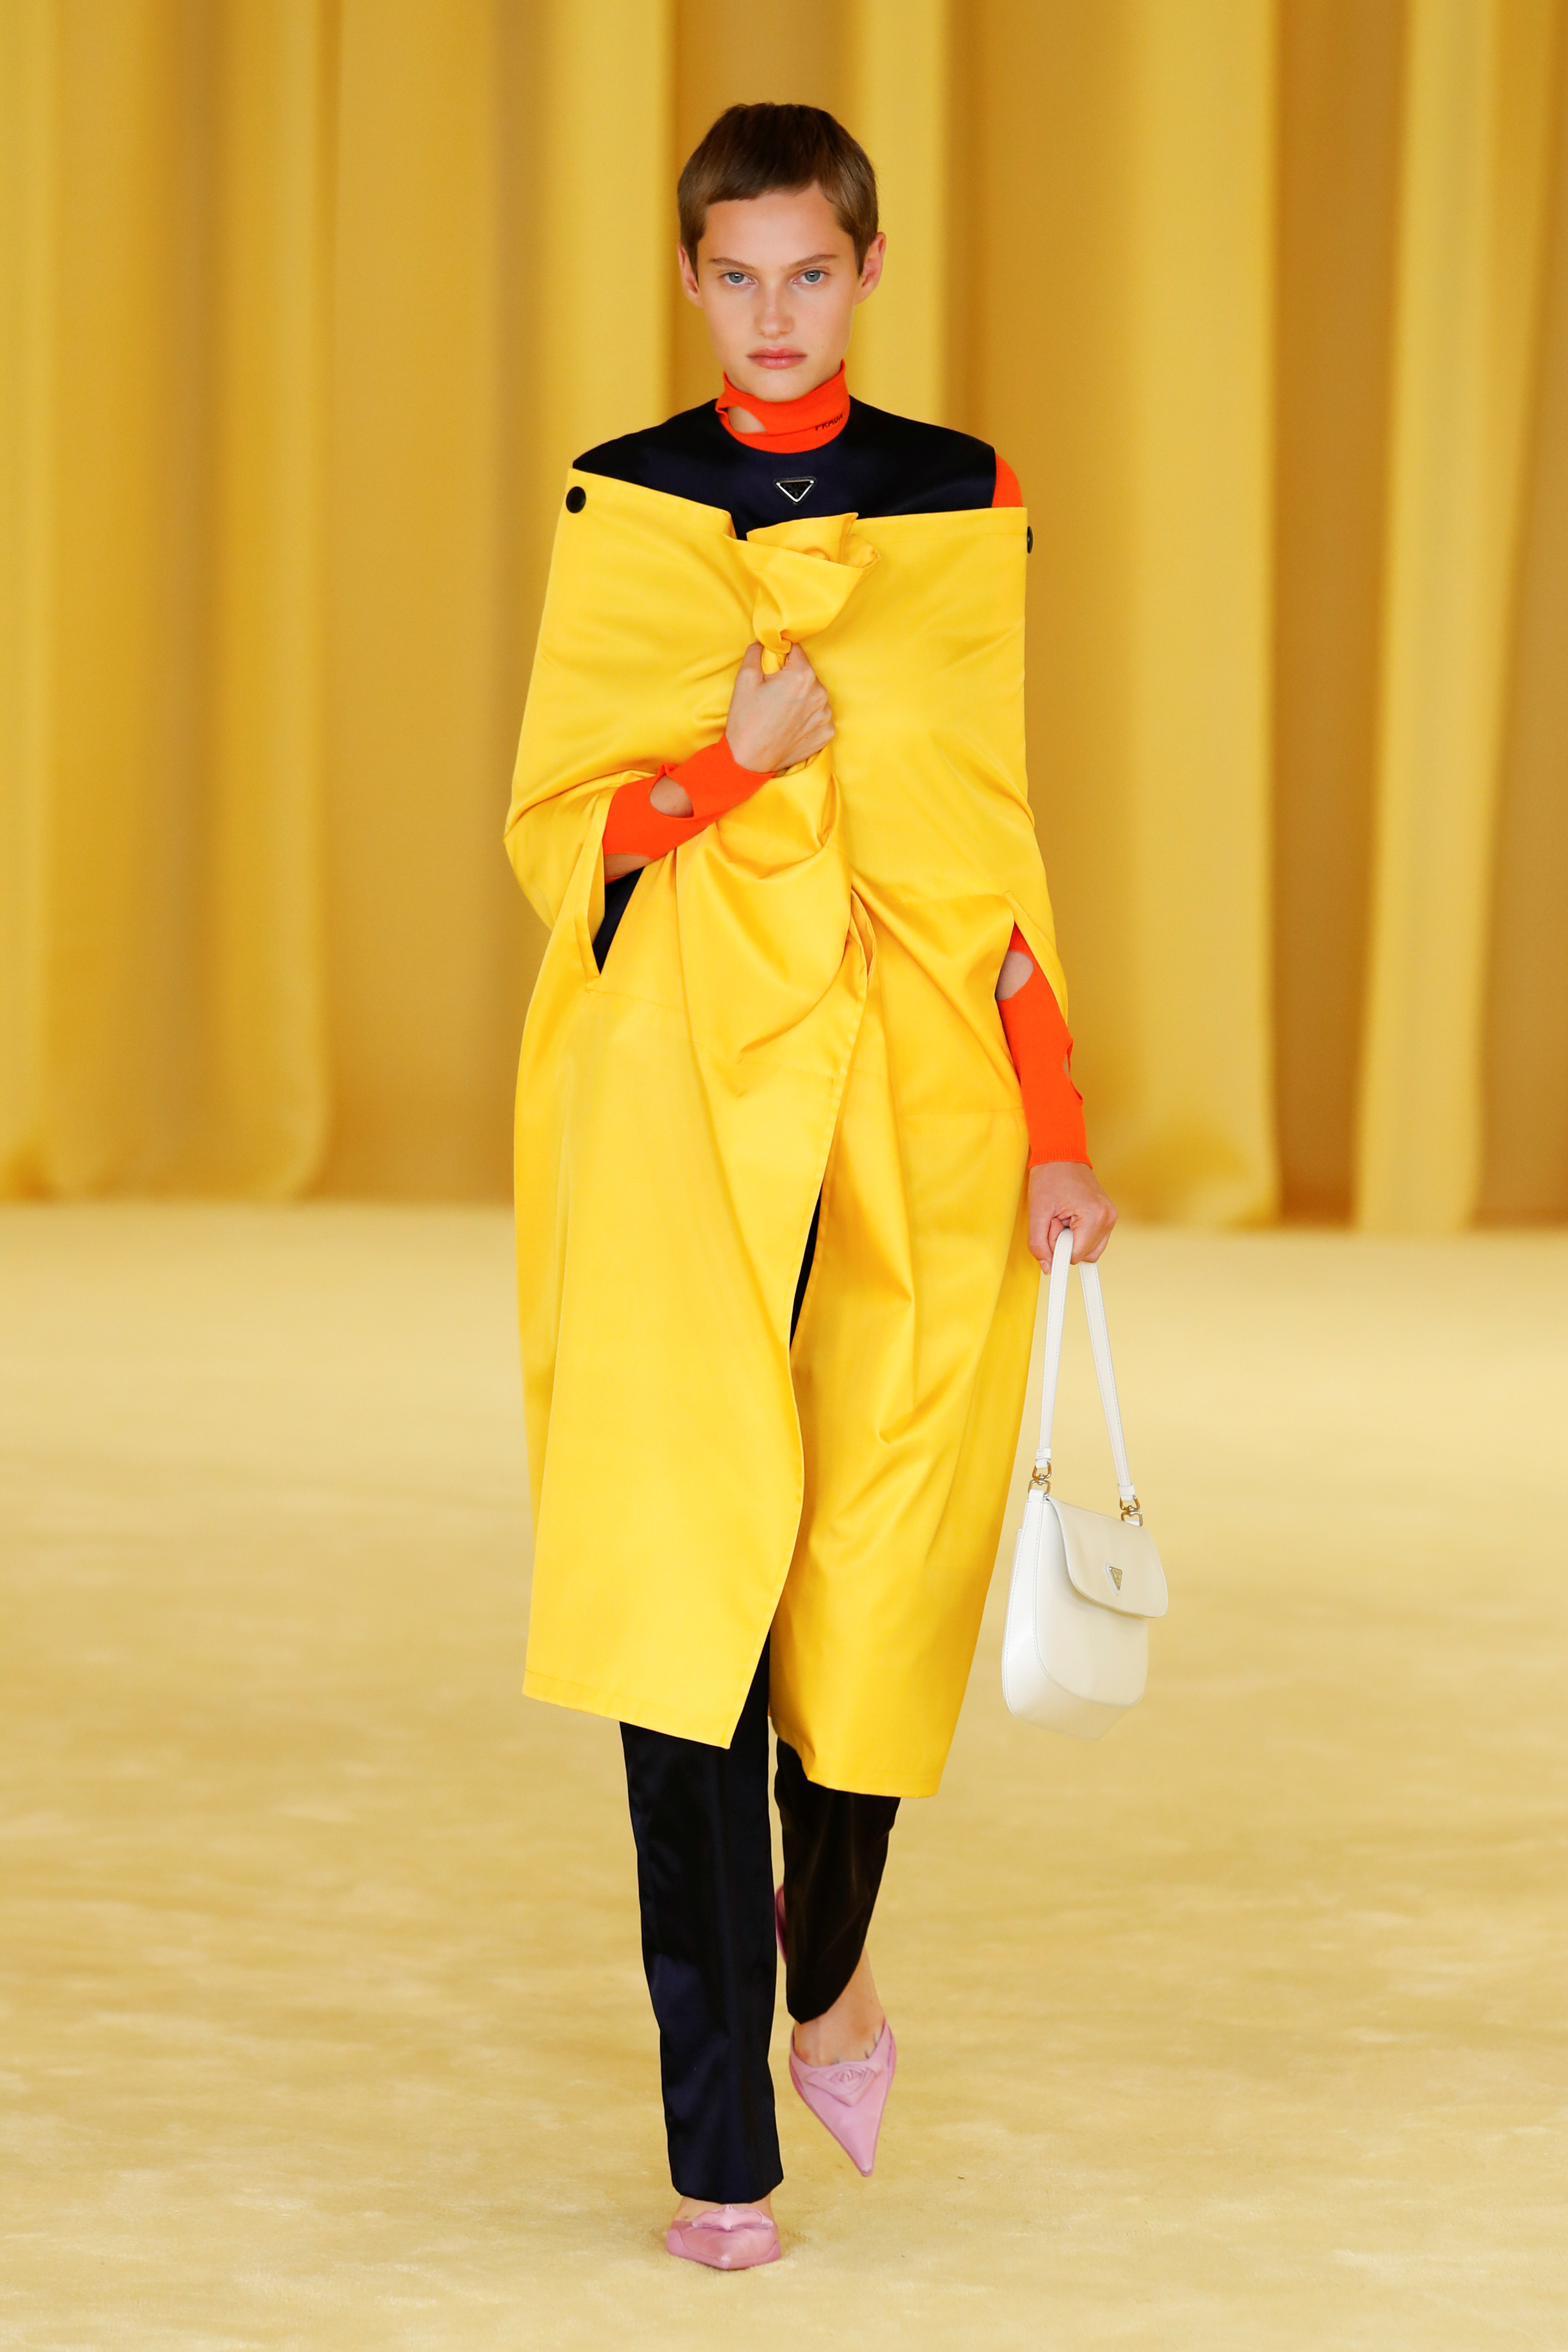 A model presents a creation from the Prada Spring/Summer 2021 women's collection during fashion week in Milan, Italy, in this handout photo released on September 24, 2020.